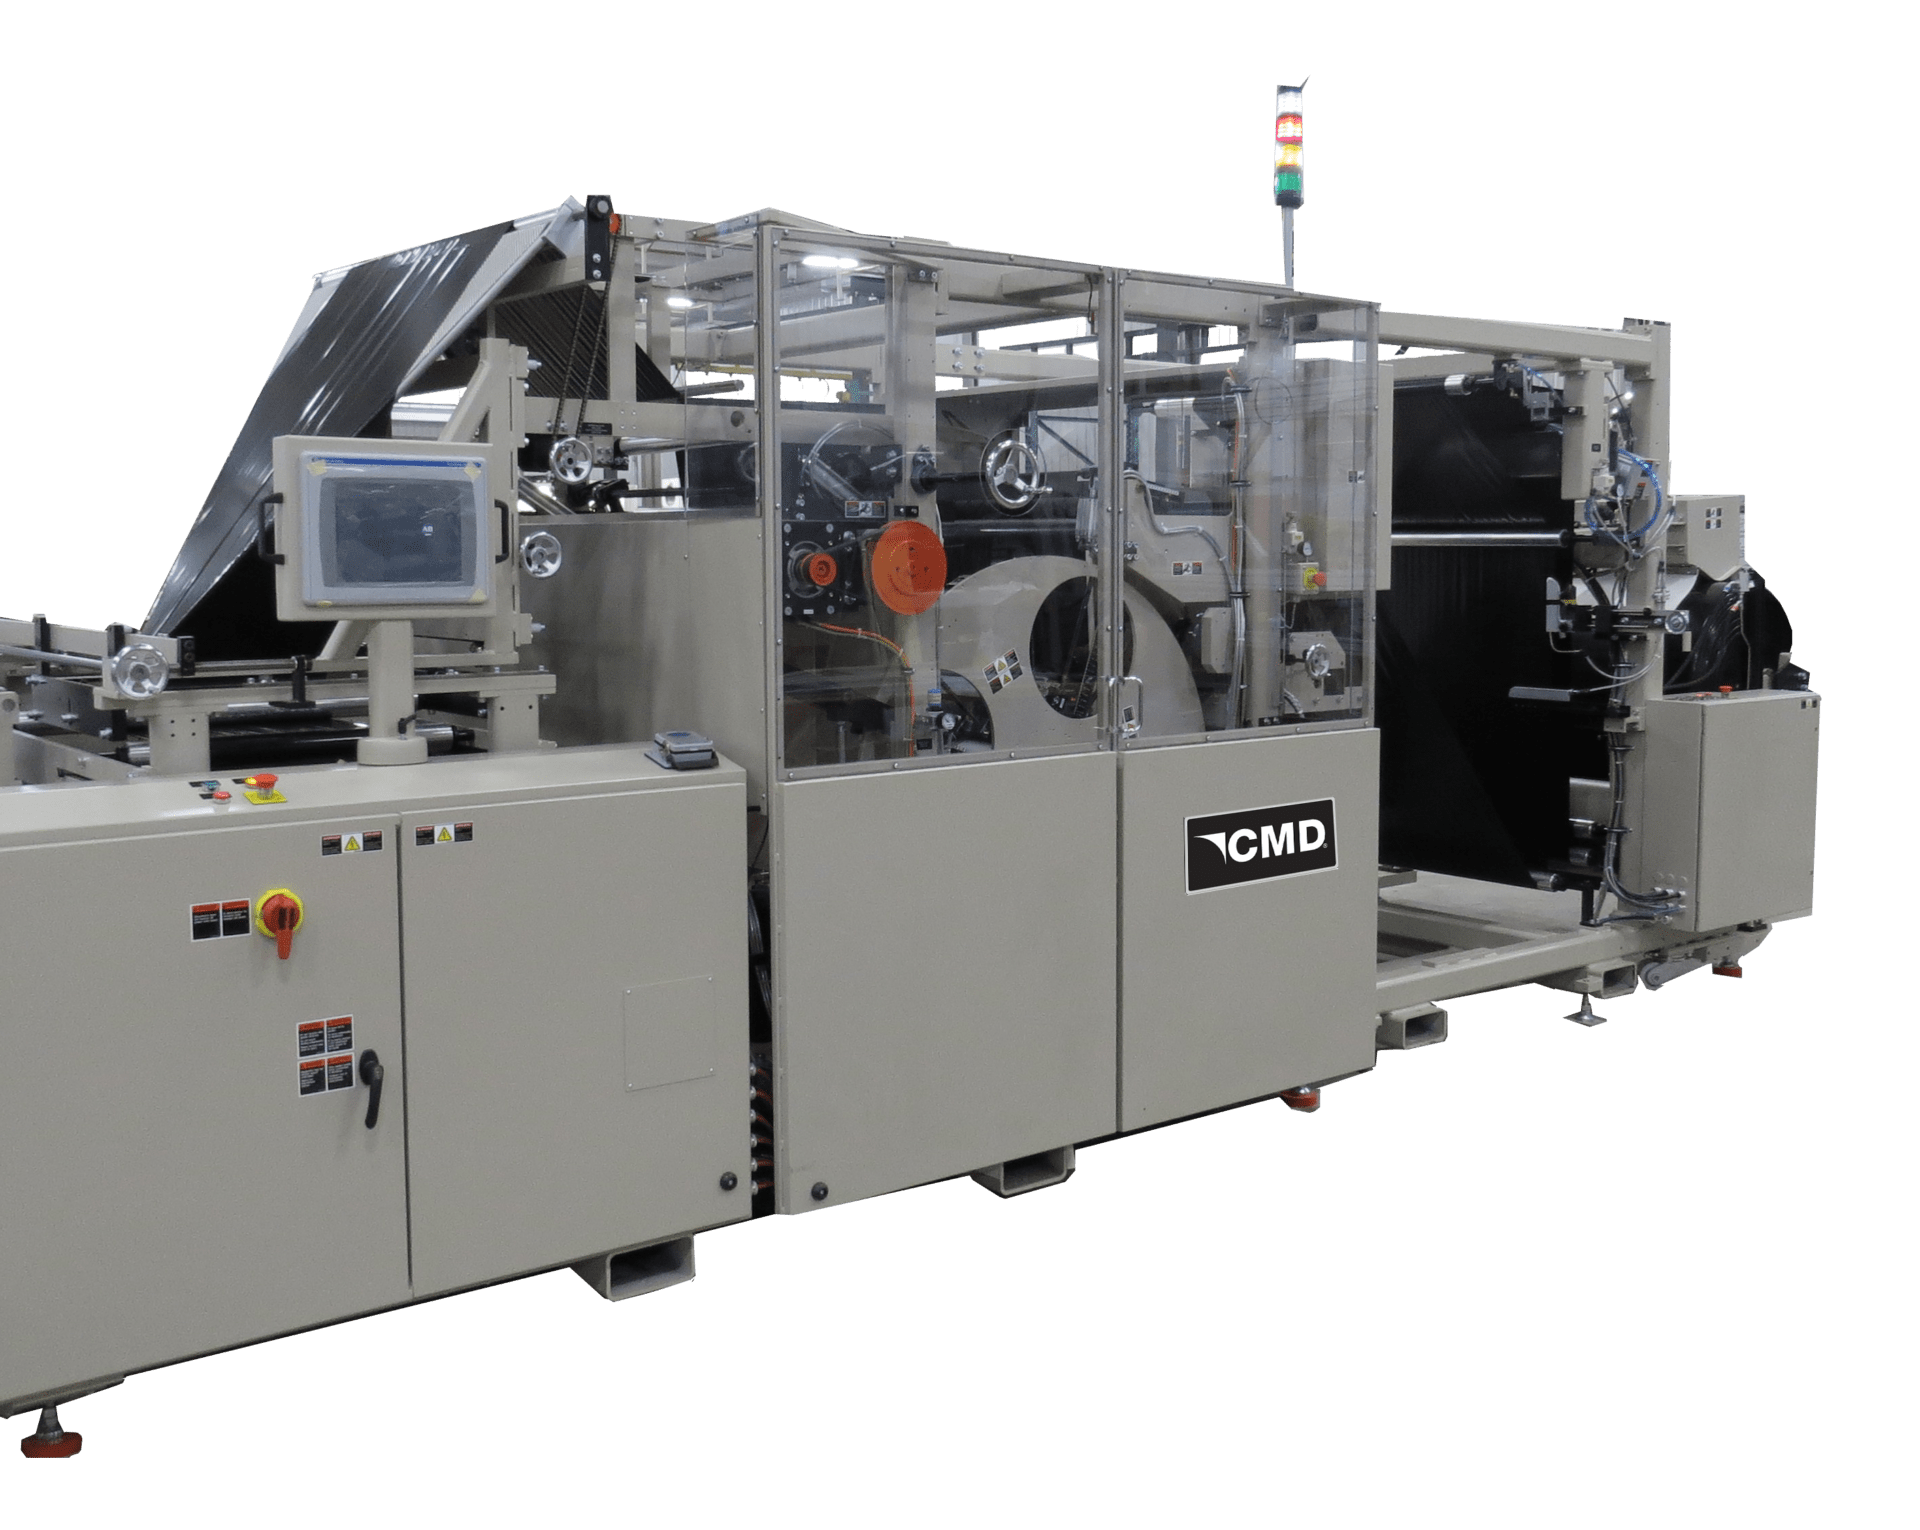 Model 1270GBM Global Bag Machine offers rotary sealing for high-output production